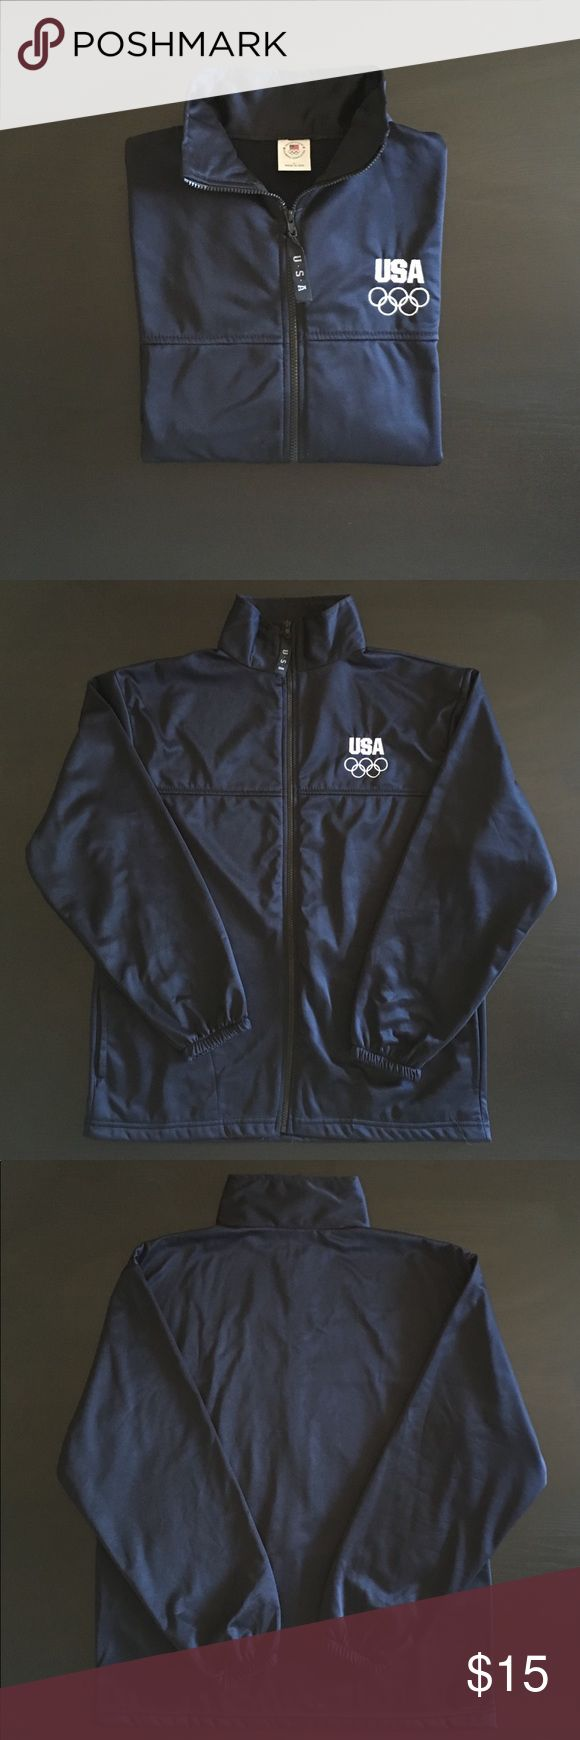 Vintage United States Olympic Committee Jacket. Vintage United States Olympic Committee Jacket in navy blue.  Men's Large. 100% Polyester. There's a small hole inside of the right pocket that's only visible on the interior.  Super comfortable and lightweight.  Olympics logo is embroidered. Vintage Jackets & Coats Lightweight & Shirt Jackets